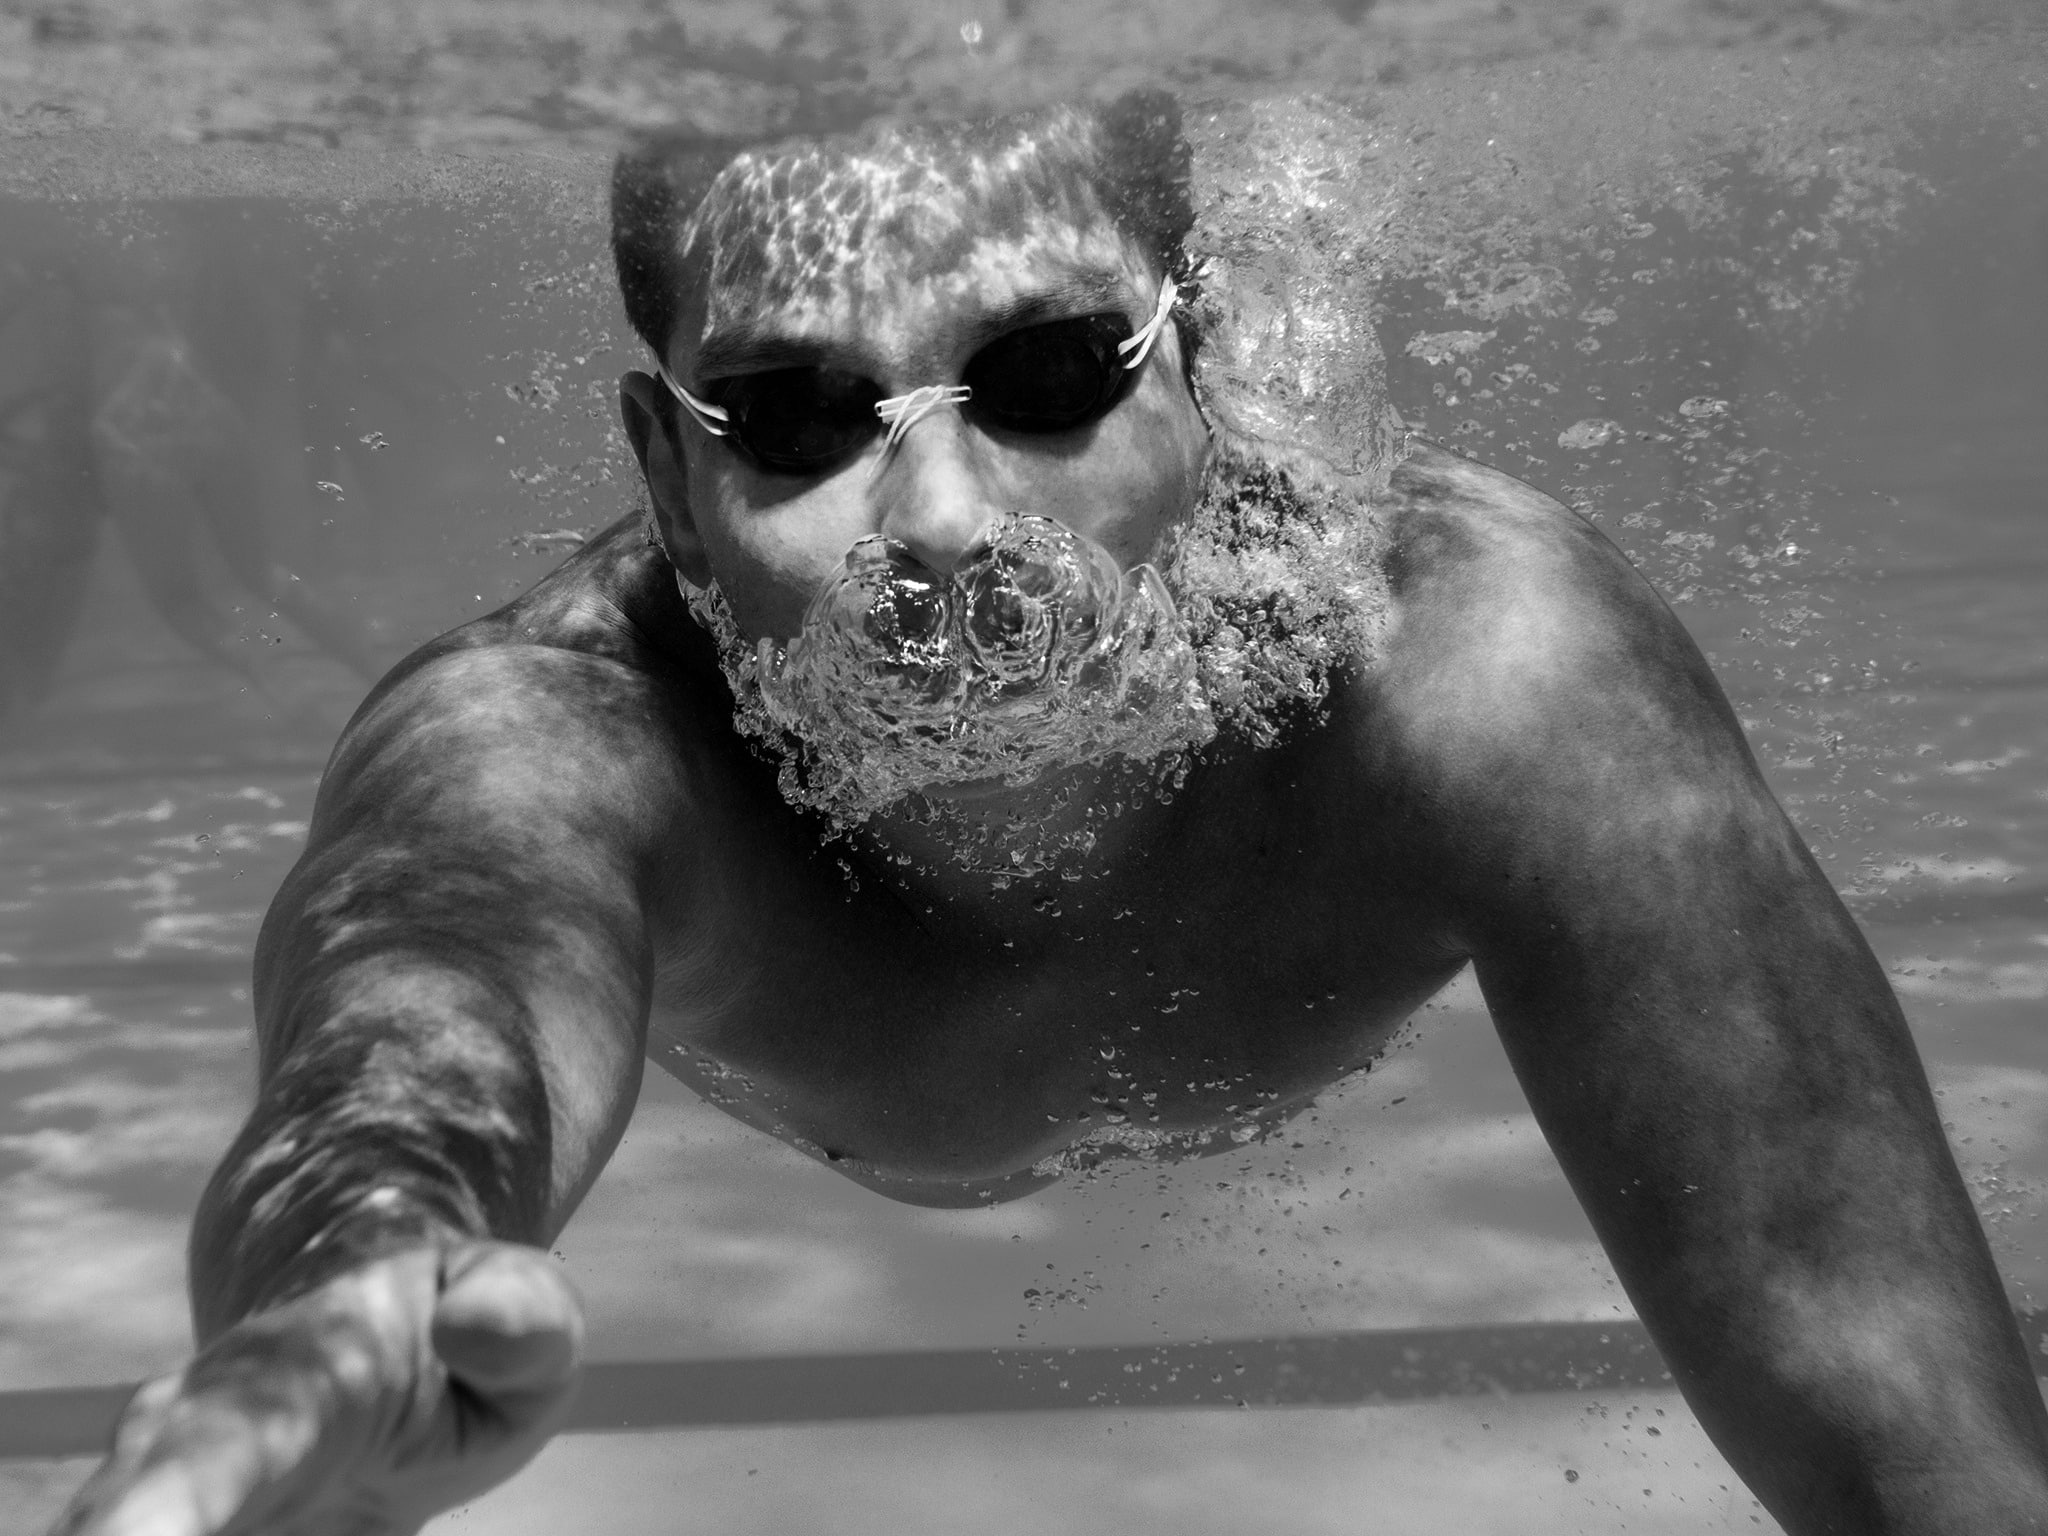 Swimmer_in_pool_exhaling